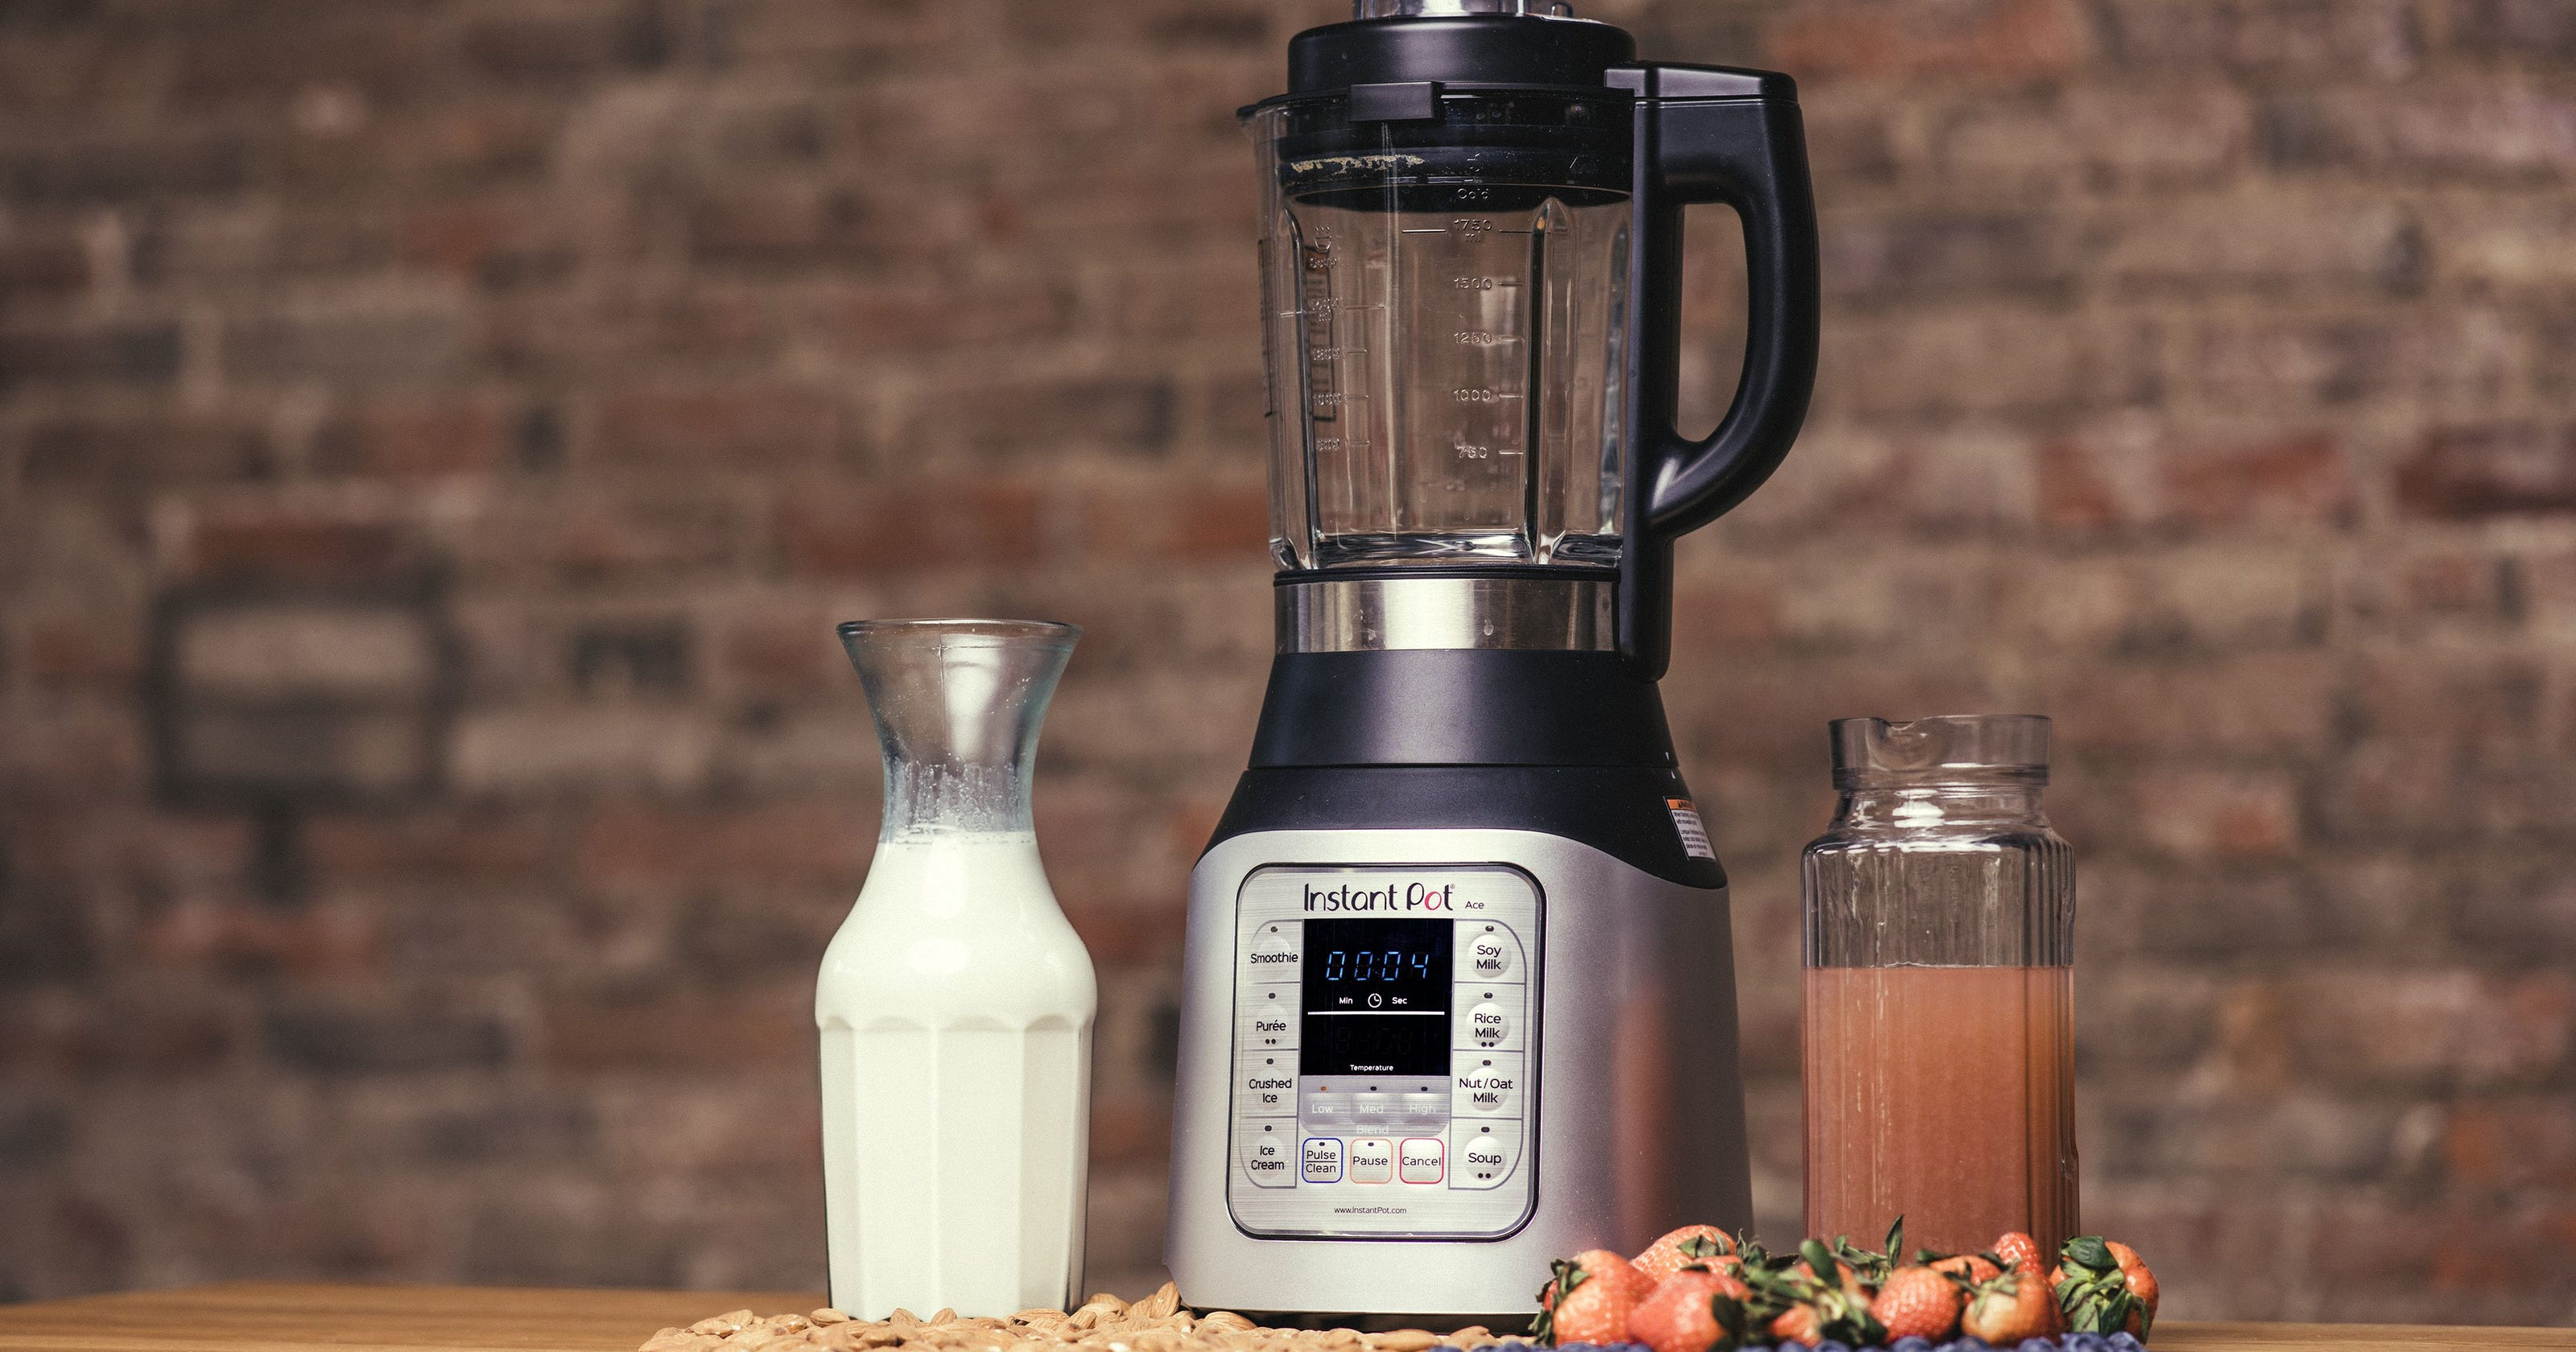 Get the Instant Pot Ace 60 Cooking Blender on sale now